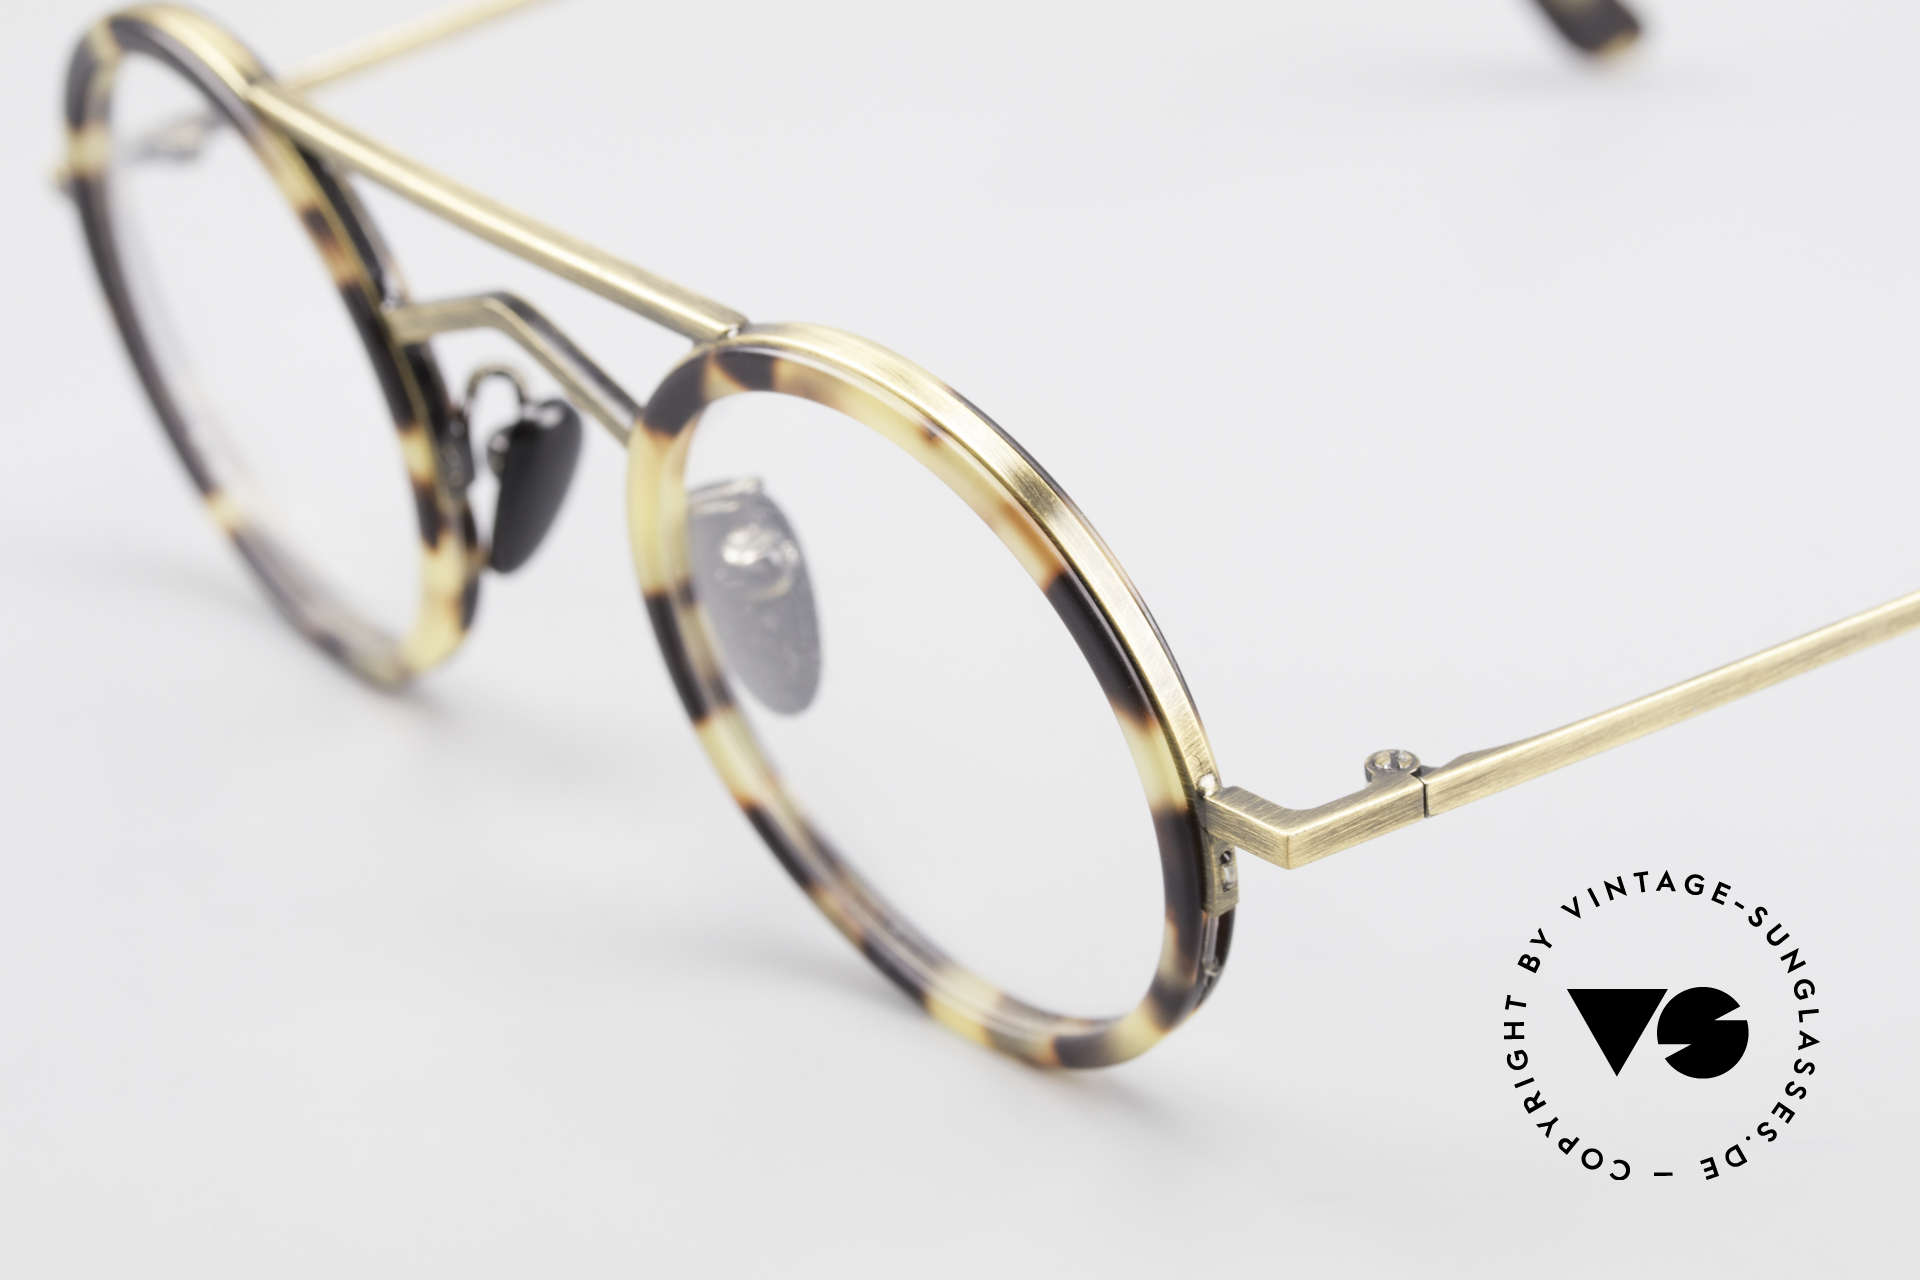 Gianni Versace 620 Round 90's Vintage Eyeglasses, classic round lens shape in extraordinary garment, Made for Men and Women